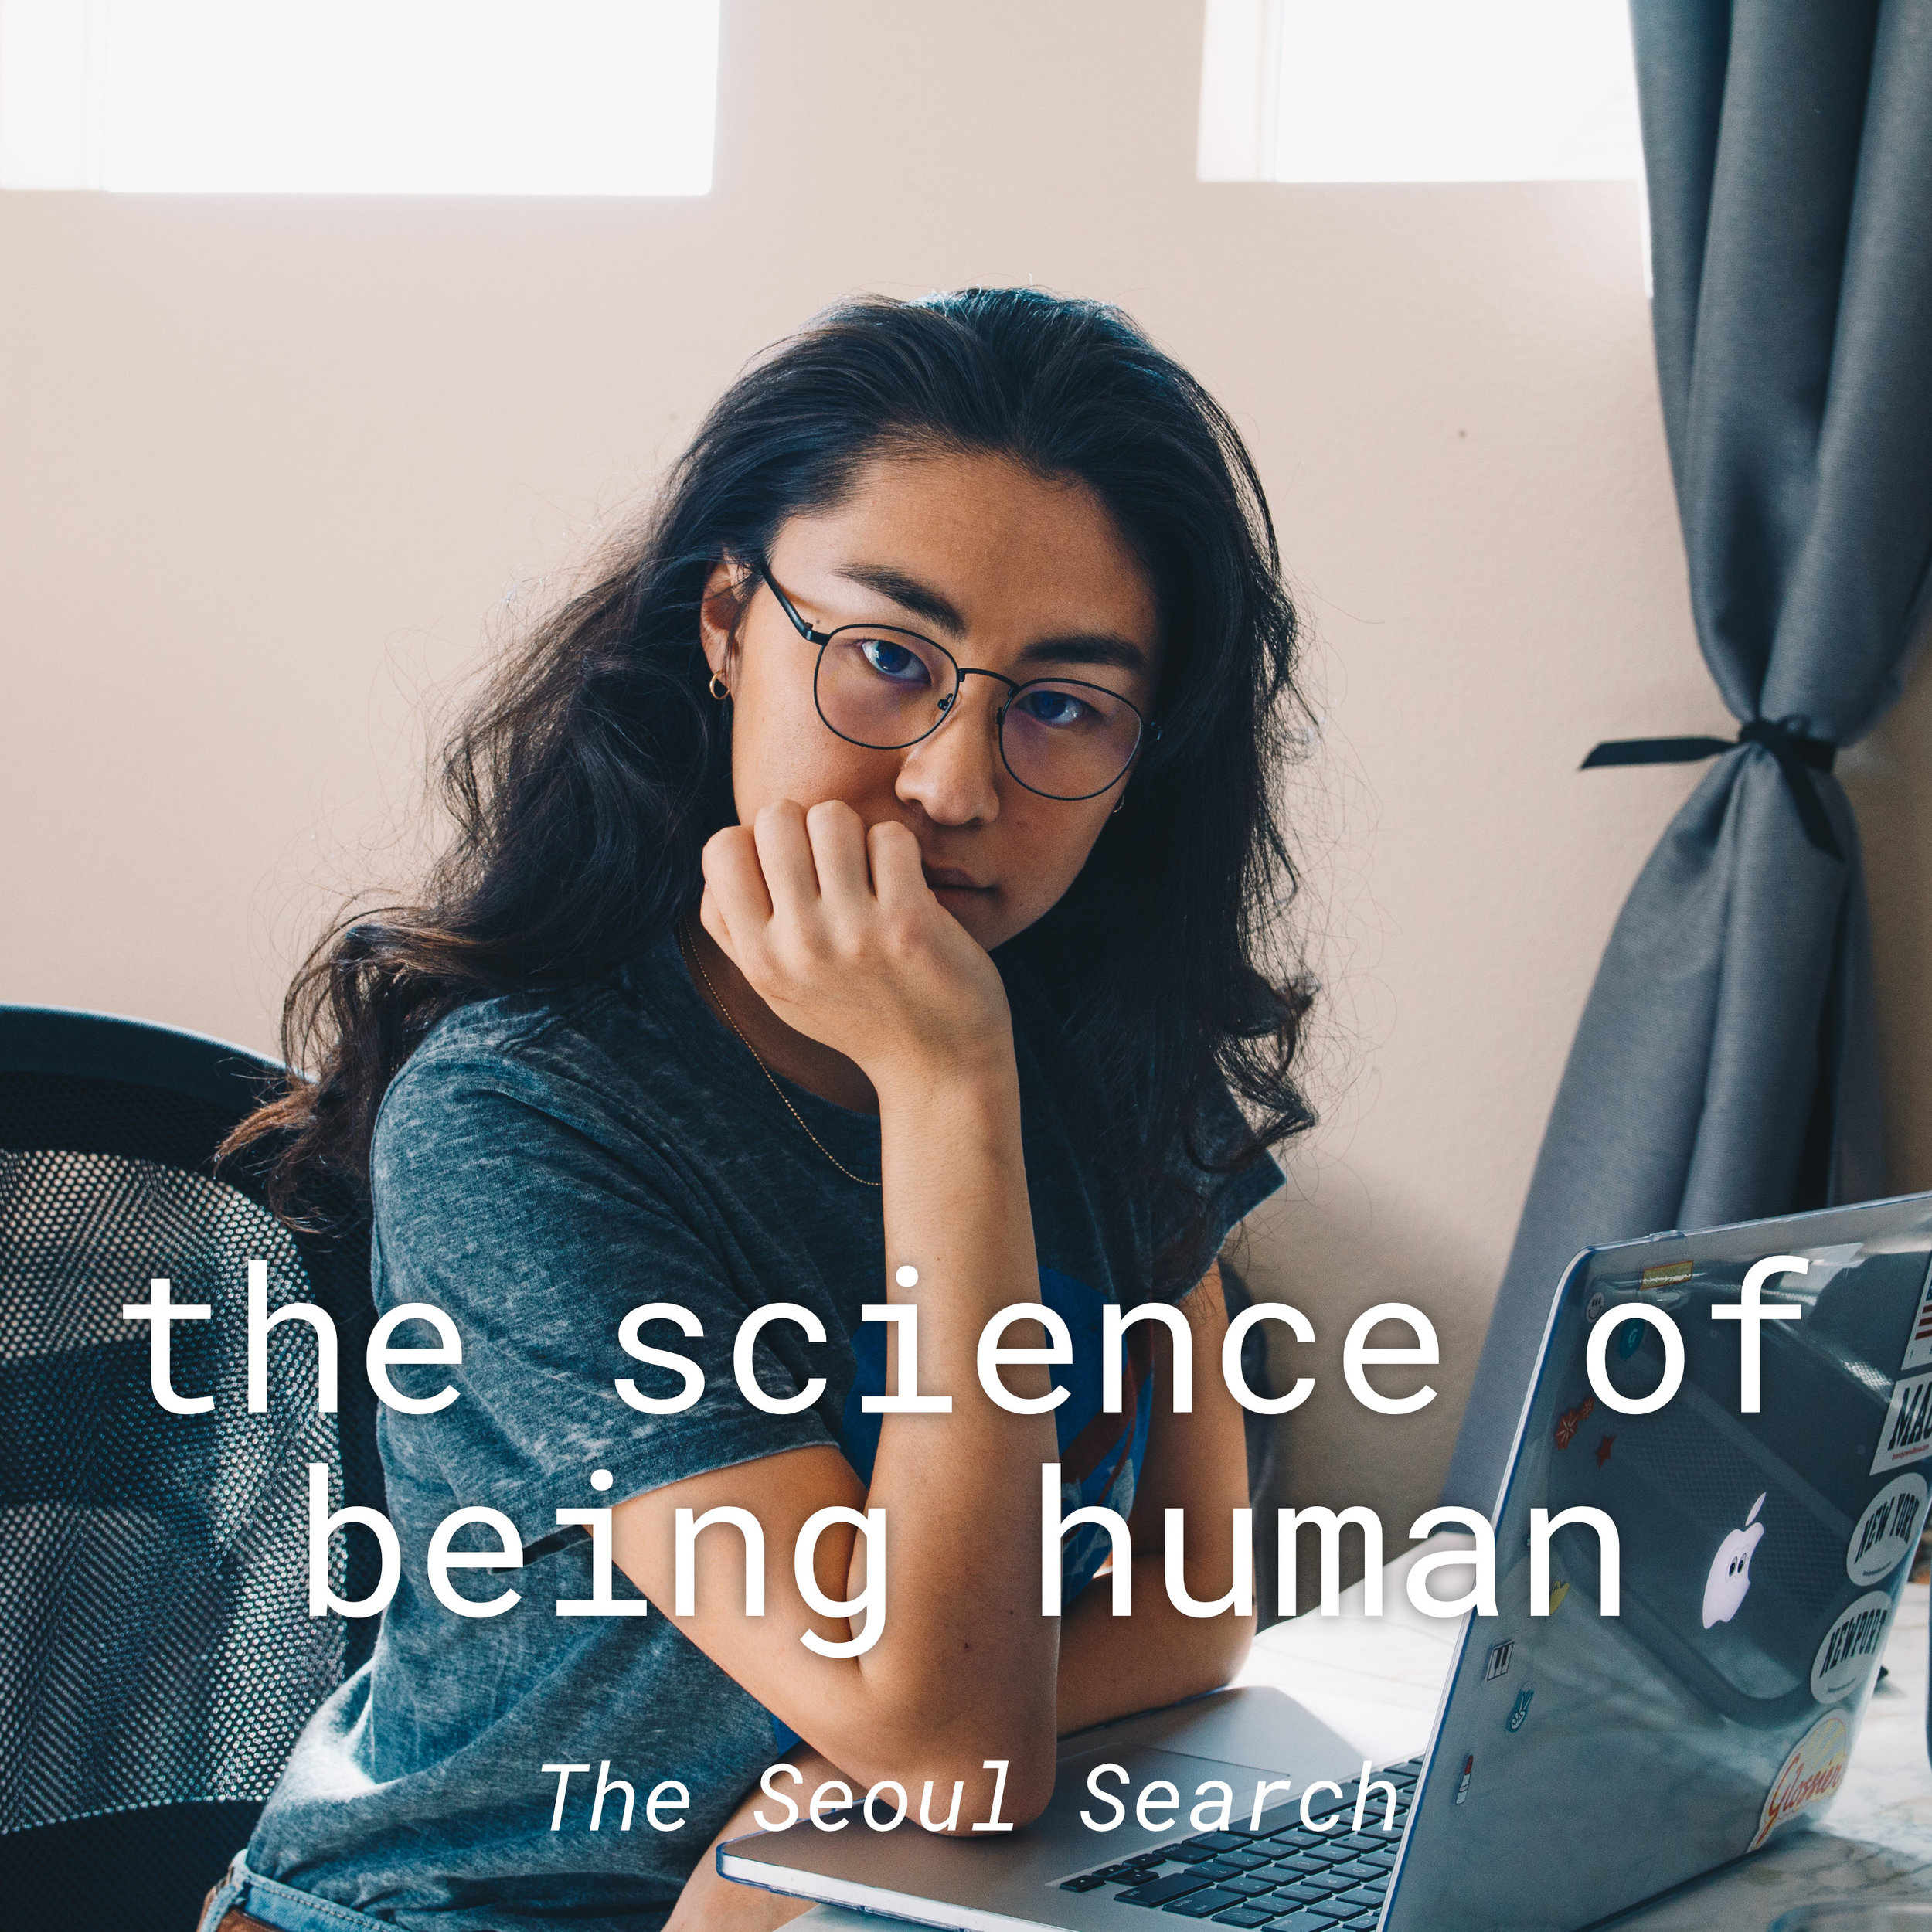 science of being human album cover.jpg